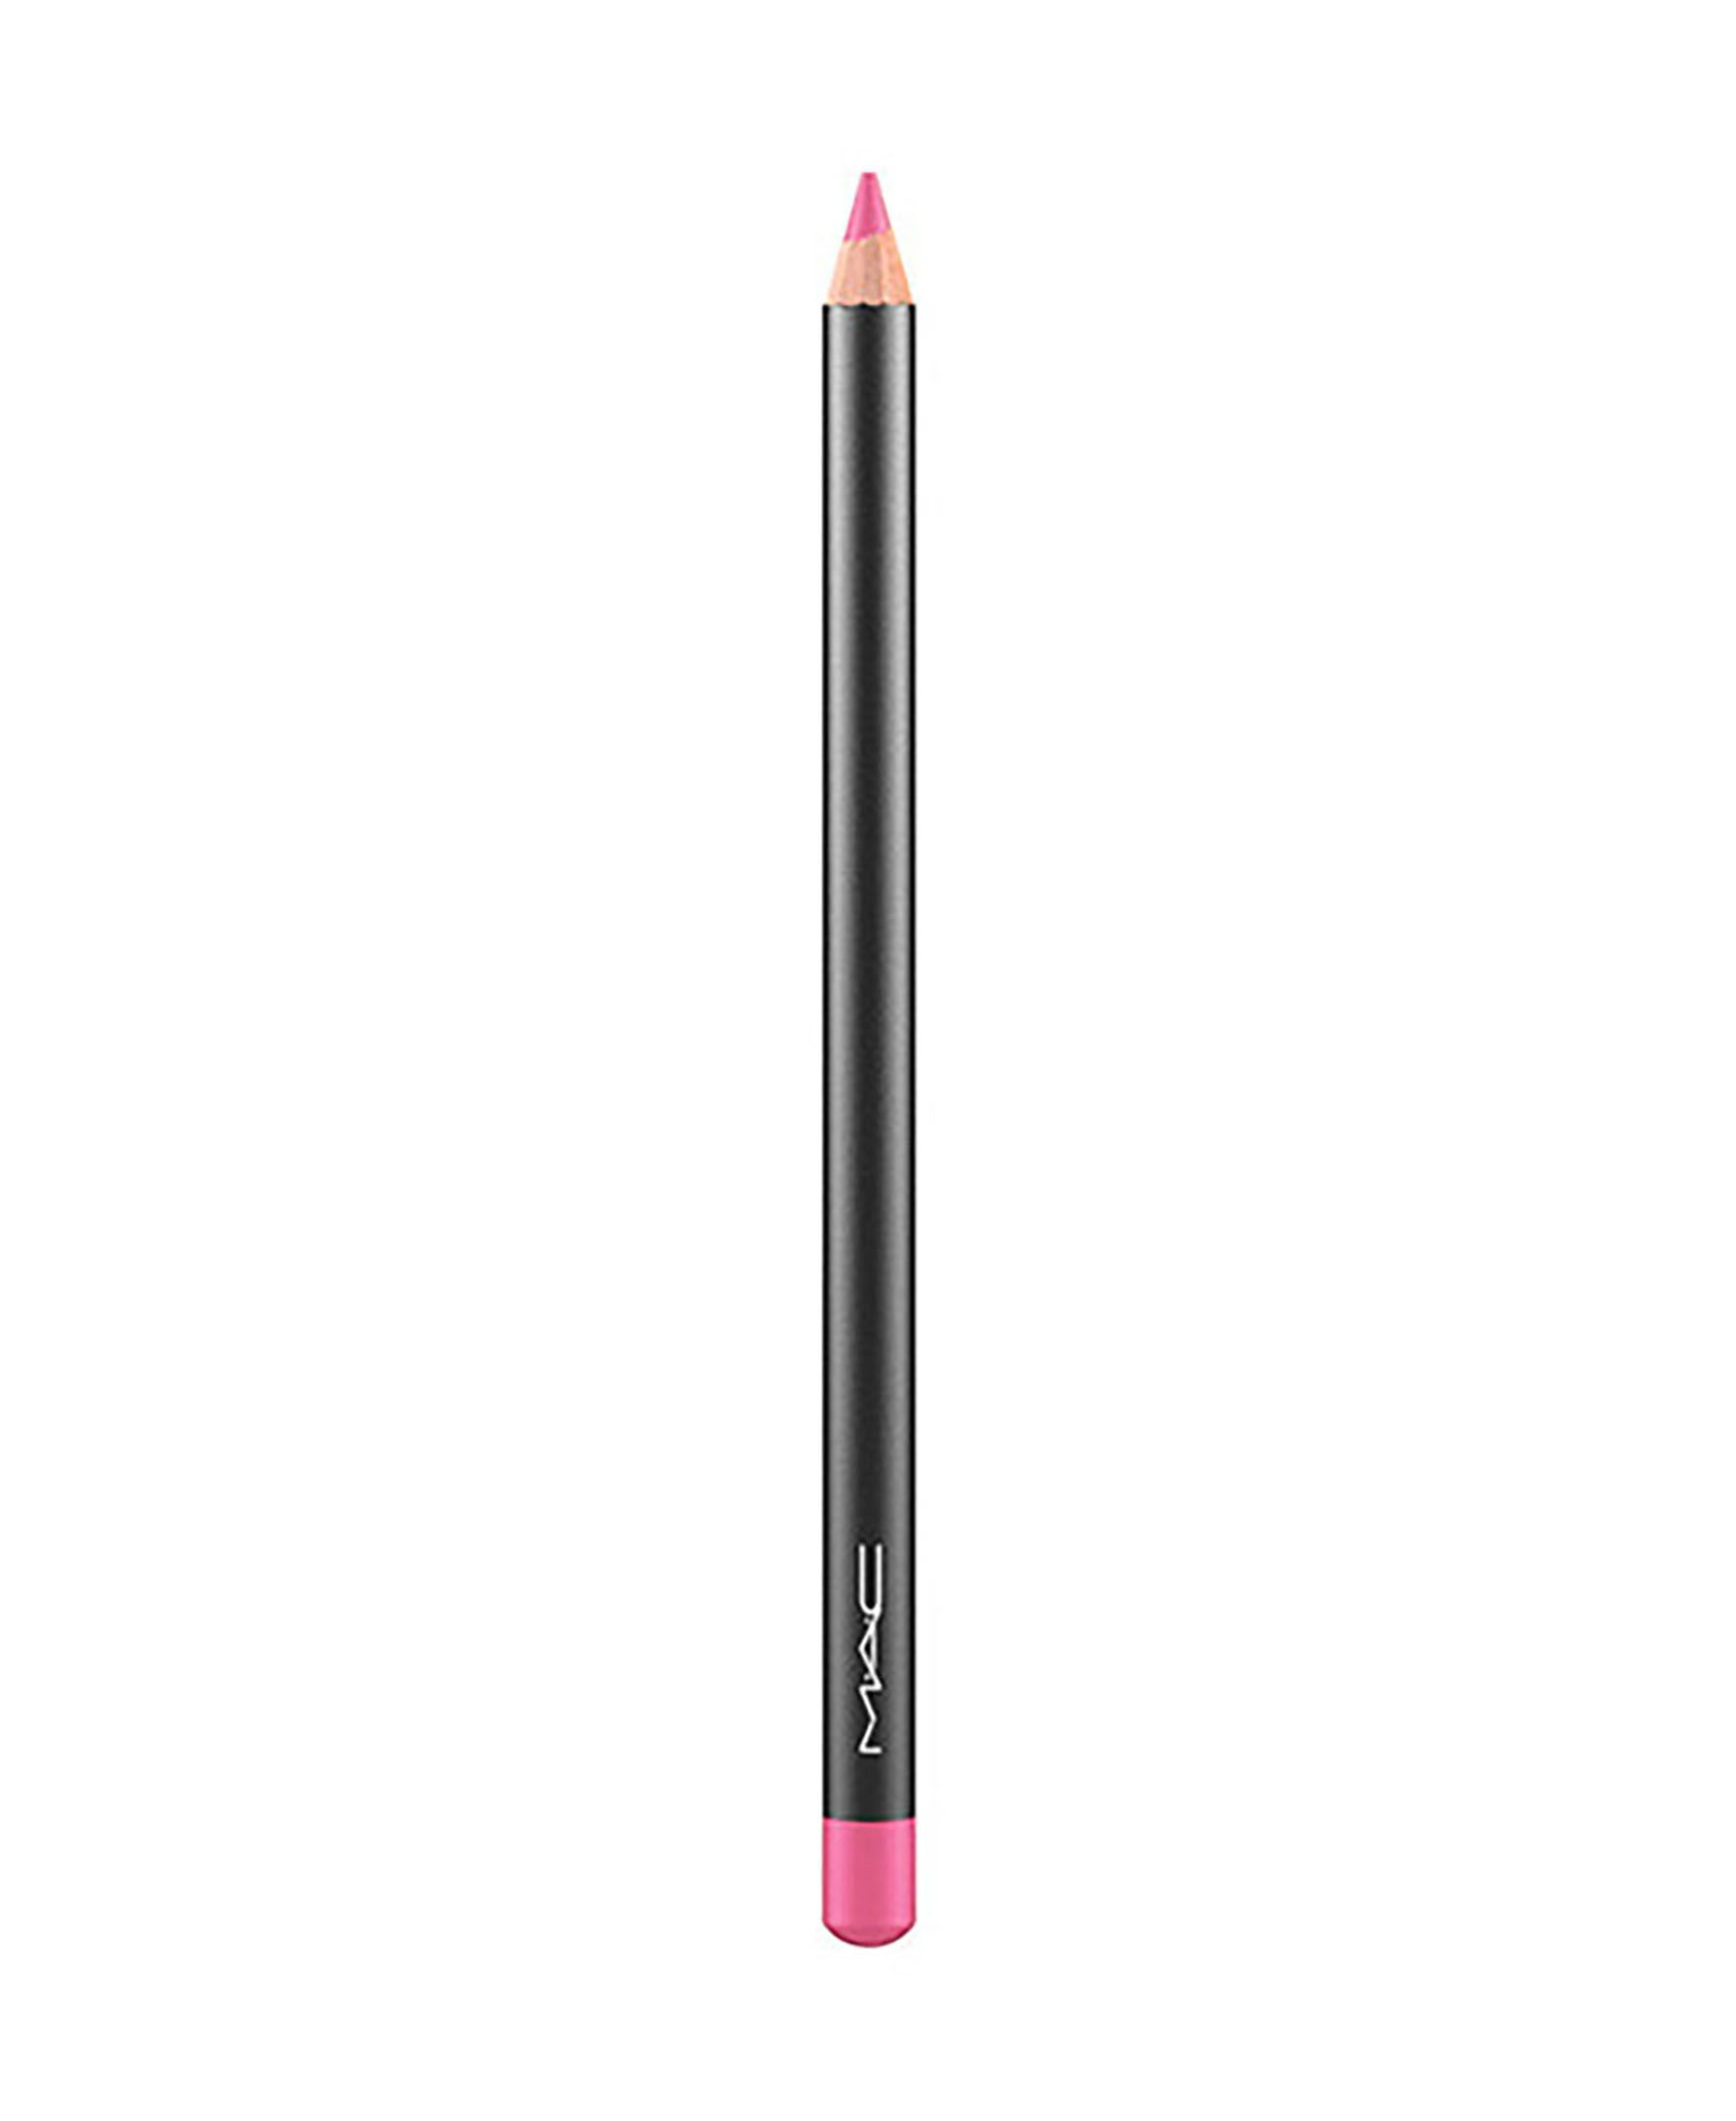 M·A·C LIP PENCIL Candy Yum Yum